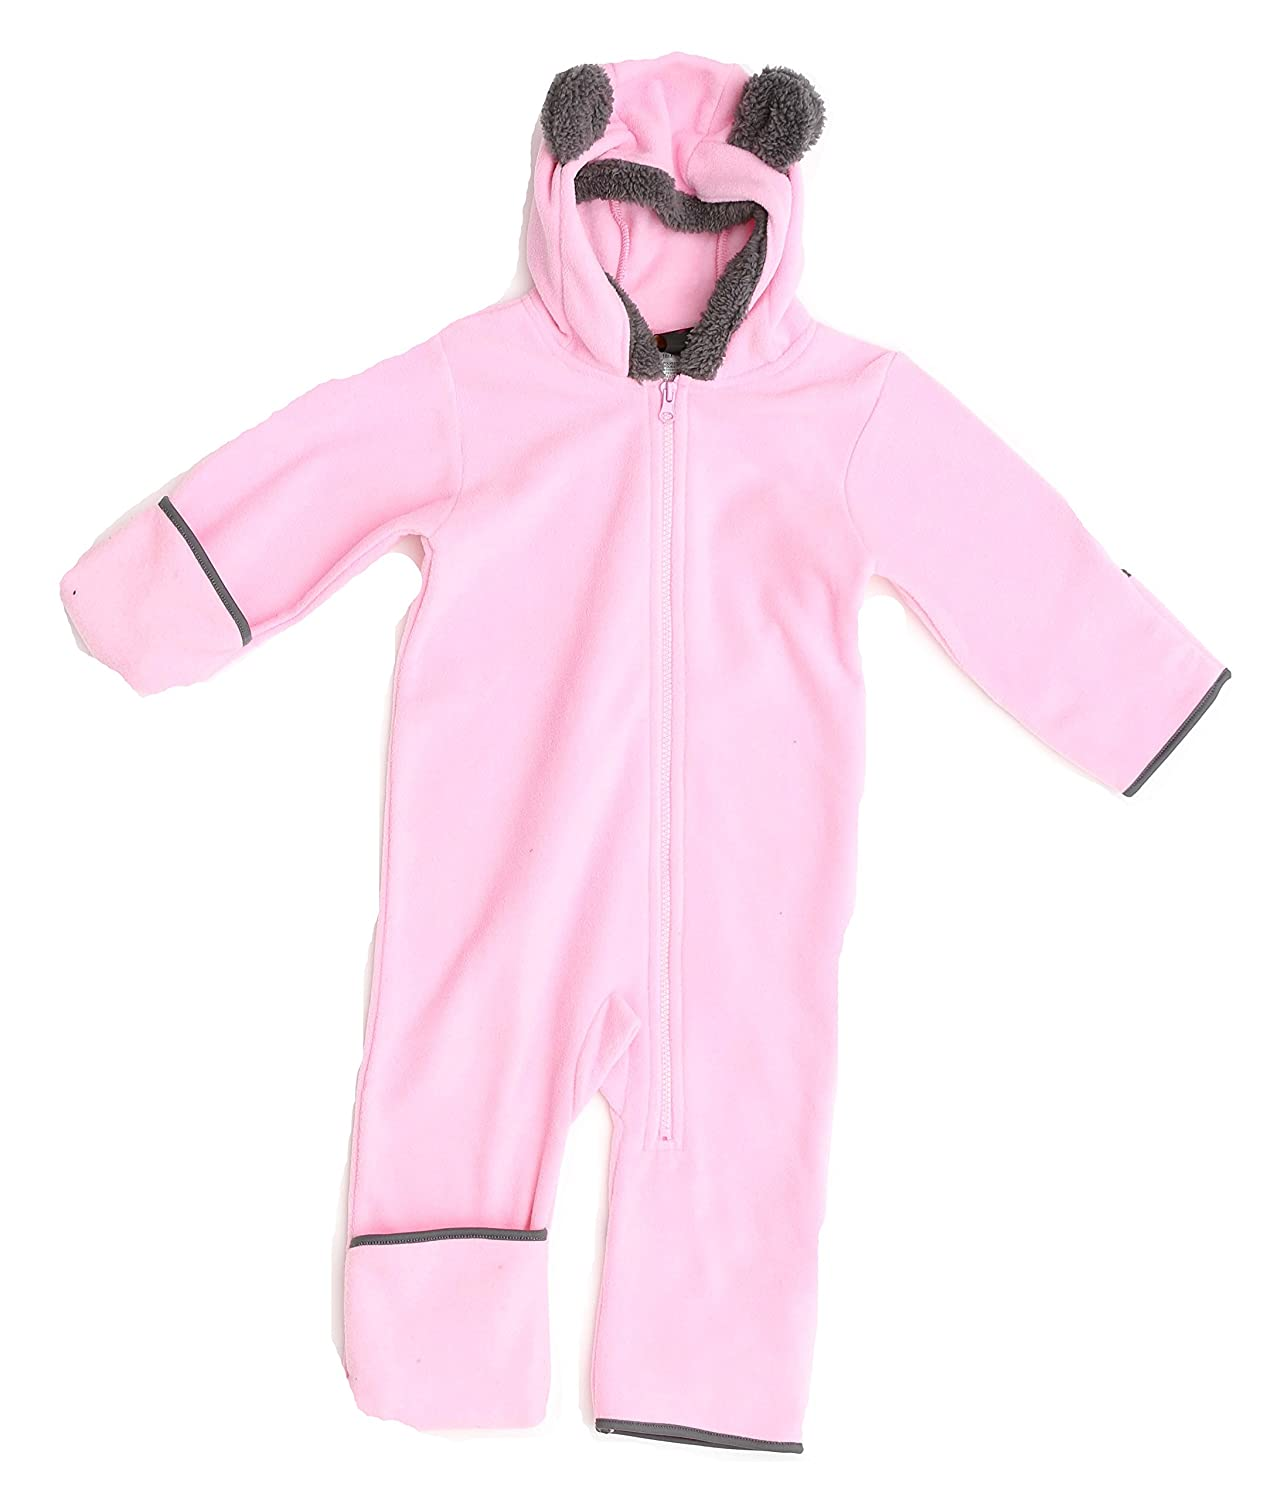 e898d4fe7 Amazon.com  Just Love Fleece Baby Girl Bunting Pram Snowsuit  Clothing